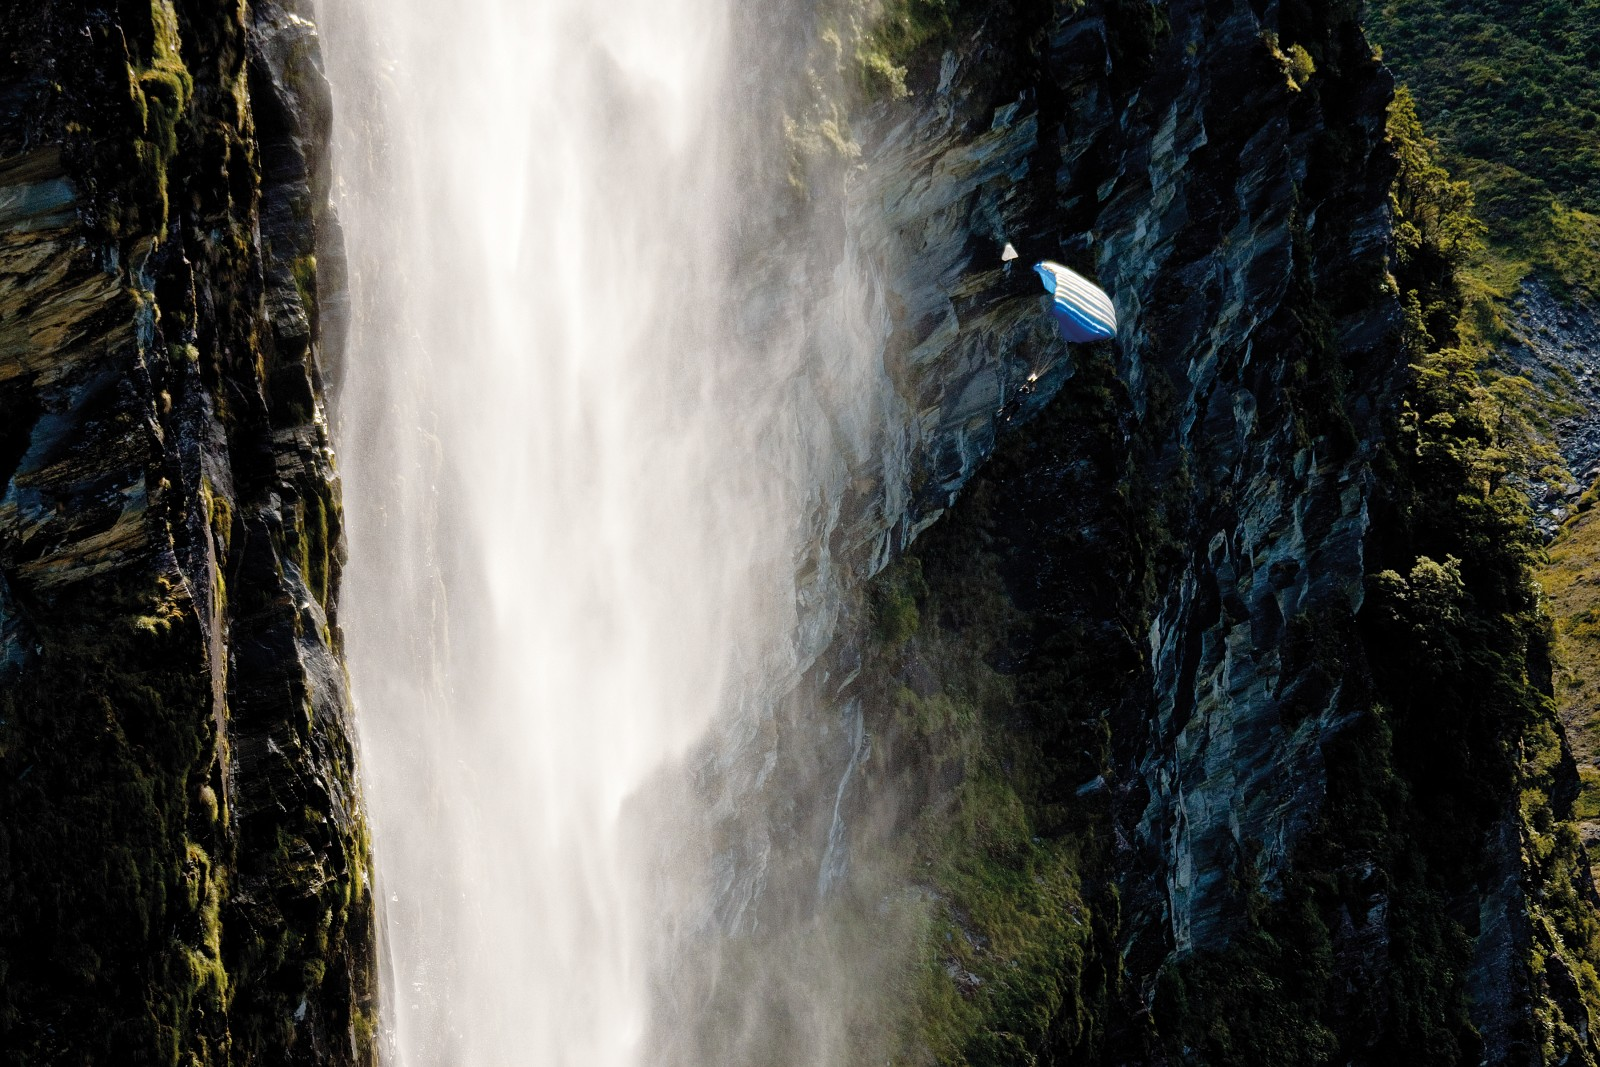 Craig Taylor deploys his canopy beneath the falls of The One in Mount Aspiring National Park, and sails to safety in a shroud of mist. Like many BASE jumpers, Taylor has had his share of injuries and close calls, but moments like this keep him coming back to the sport.